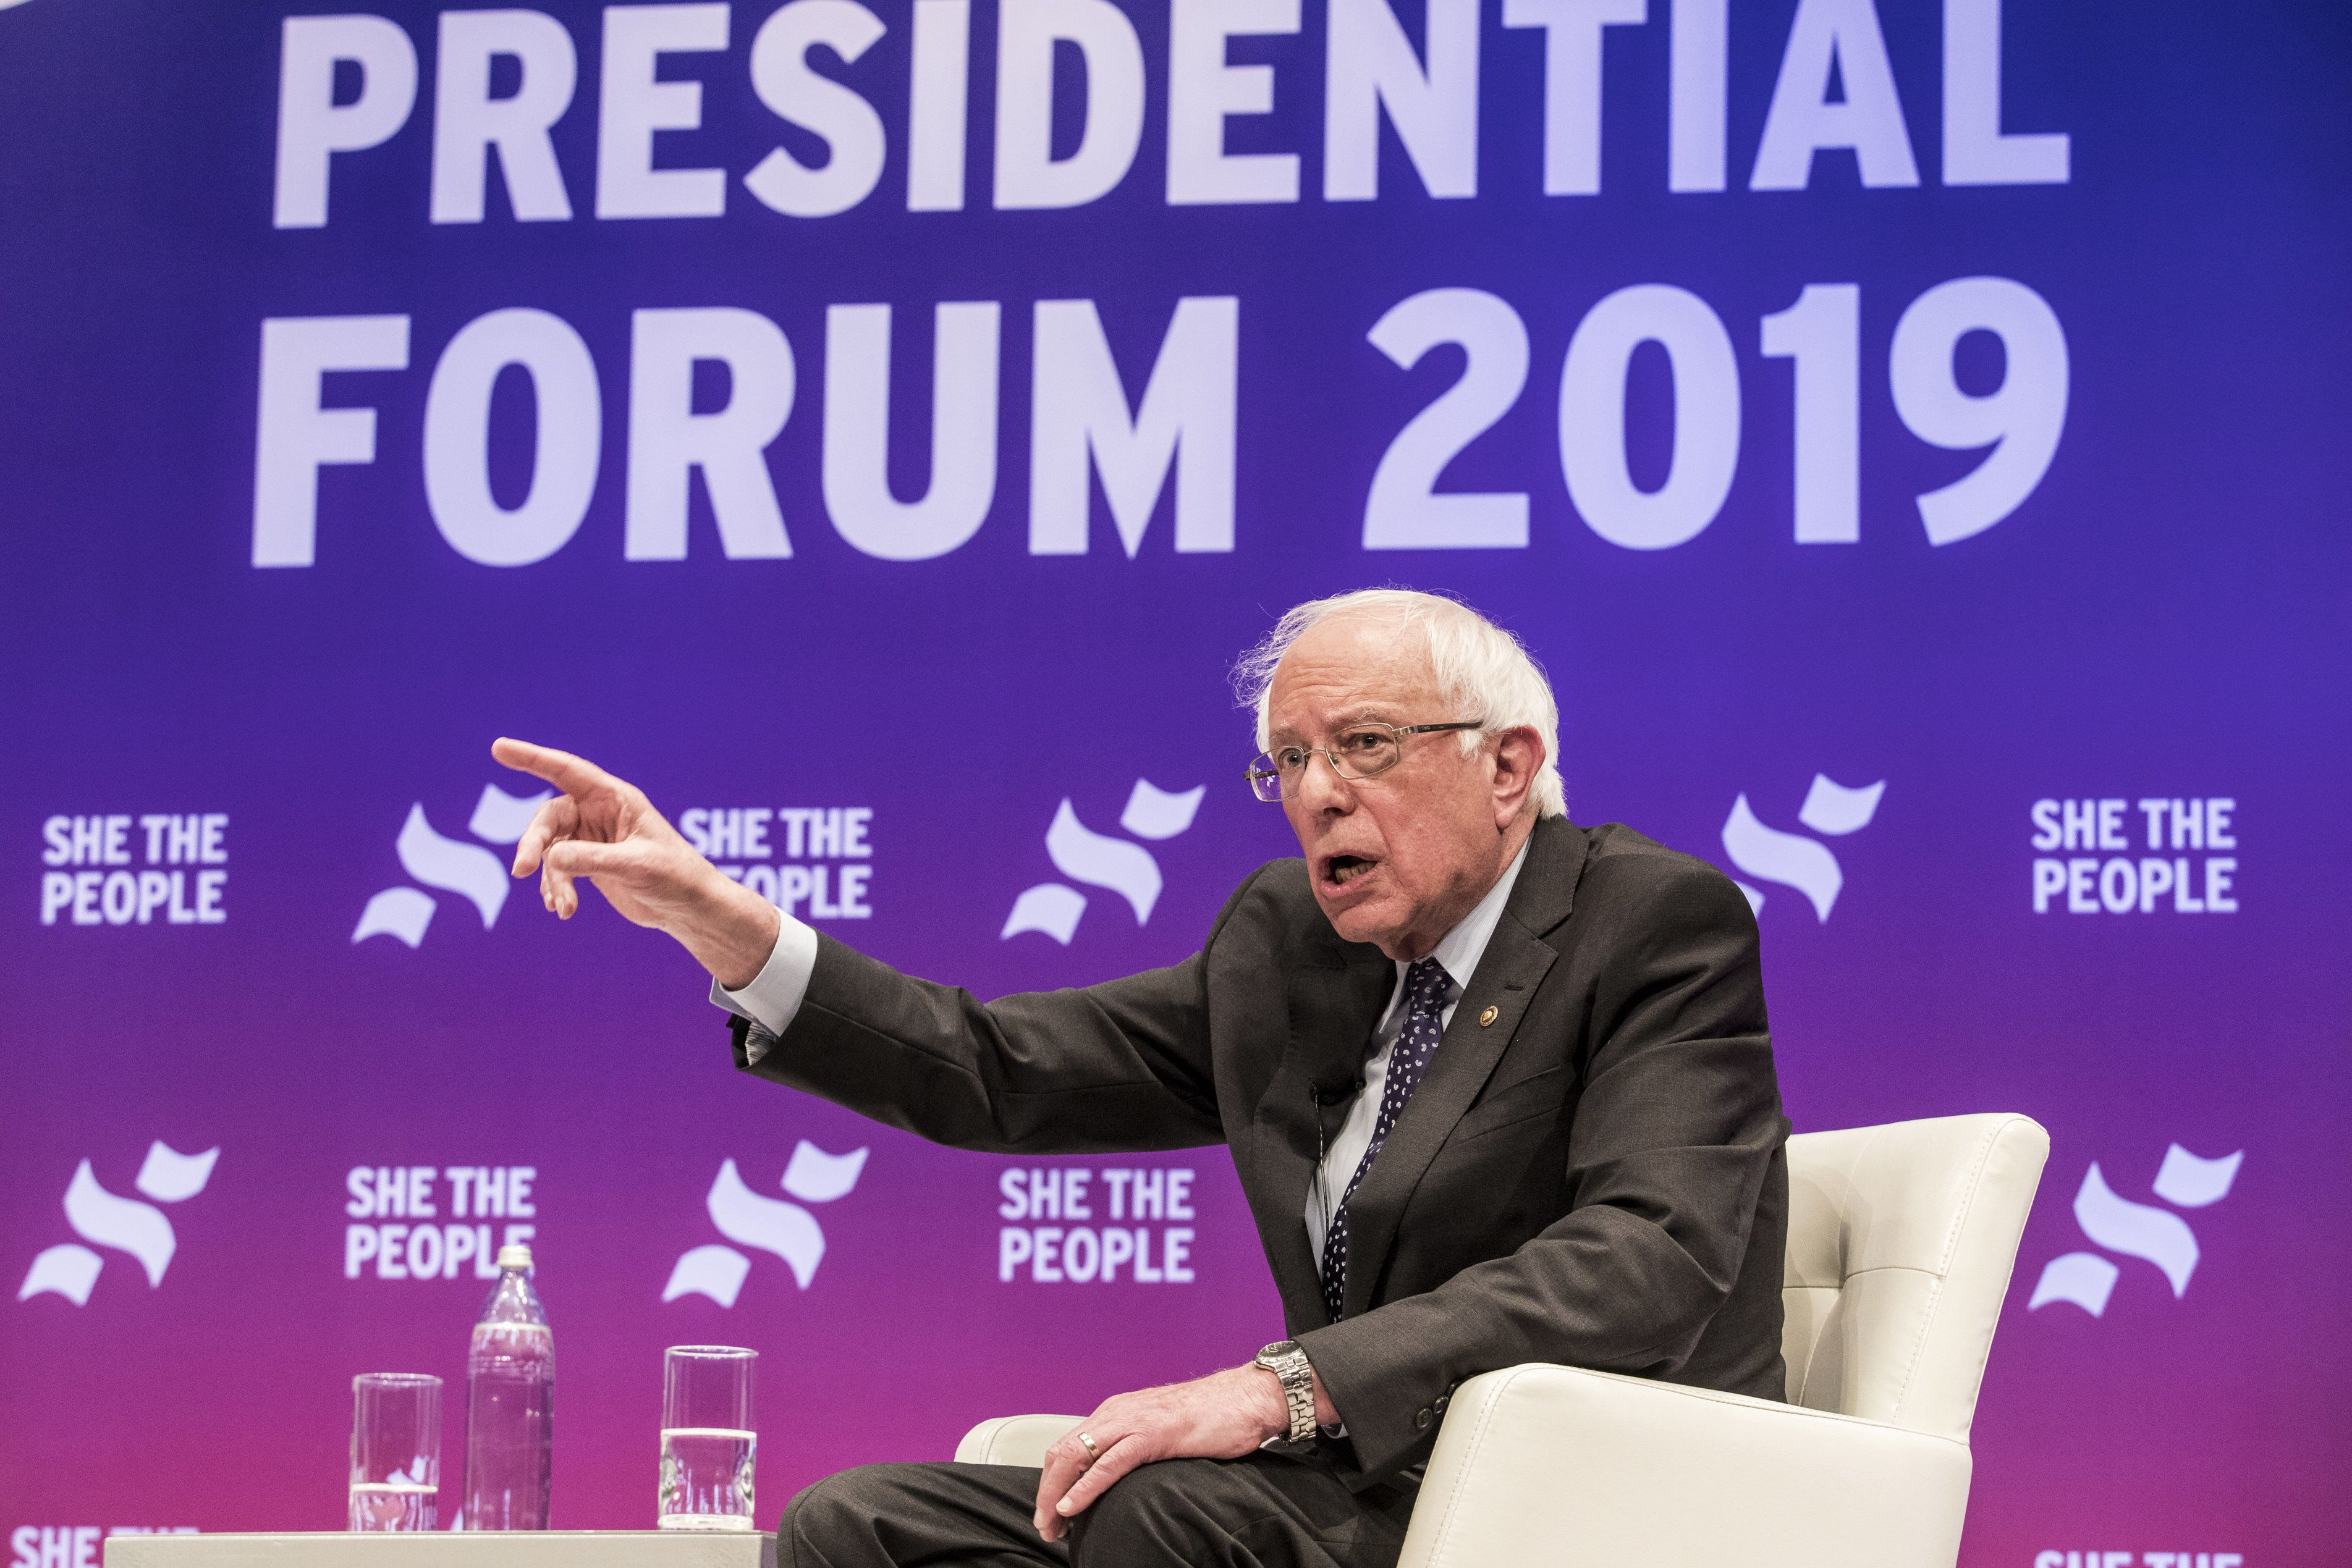 Senator Bernie Sanders, an Independent from Vermont and 2020 presidential candidate, speaks during a She the People voter forum in Houston, Texas, U.S., on Wednesday, April 24, 2019. She the People's forum will gather more than 40 local and national partner organizations and 1,000 women of color in politics from more than 28 states. Photographer: Scott Dalton/Bloomberg via Getty Images